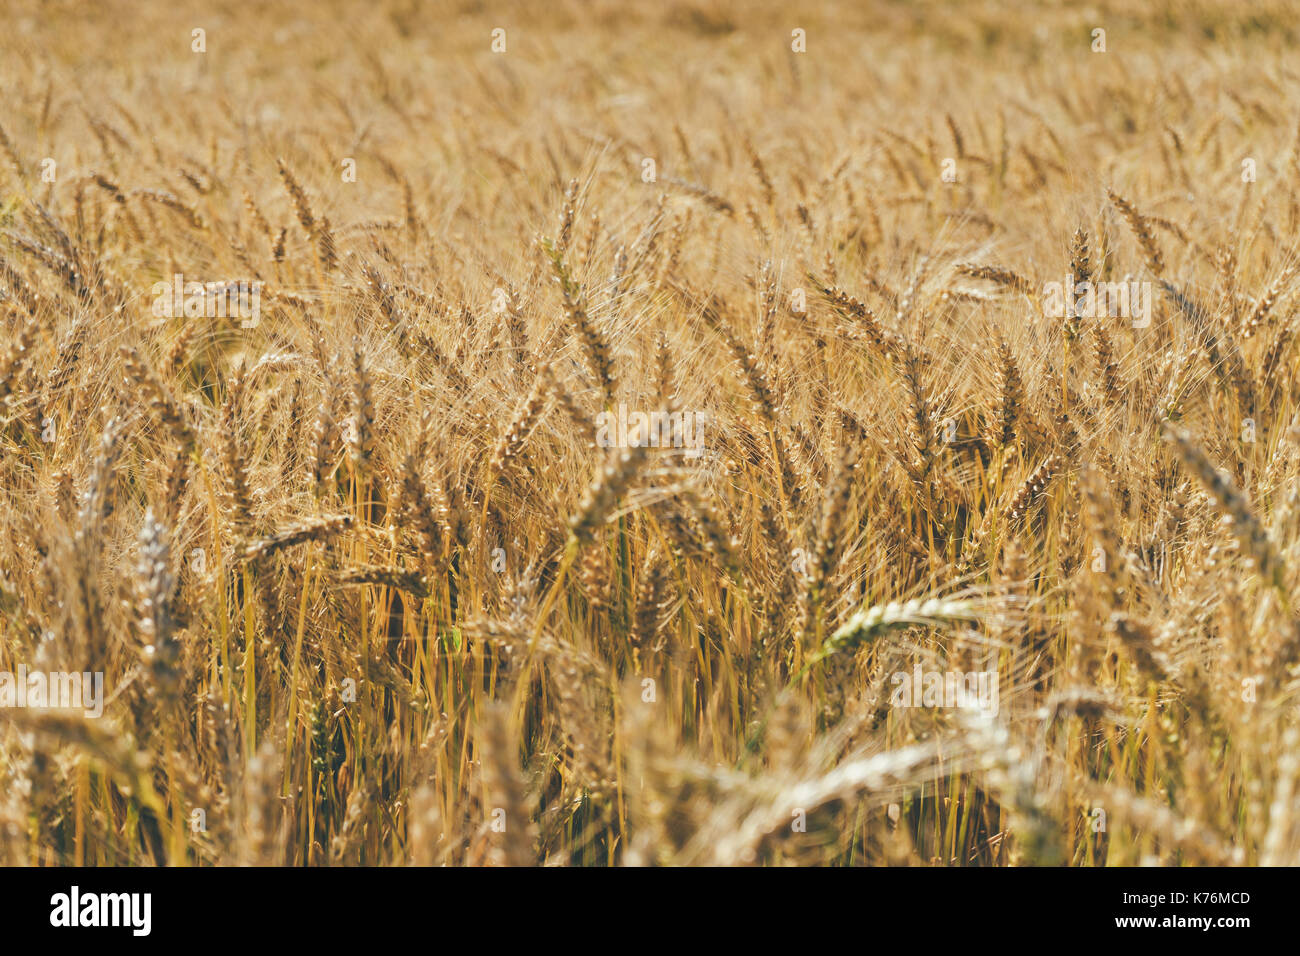 Closeup on organic golden ripe ears of cereal culture in field, agriculture background Stock Photo